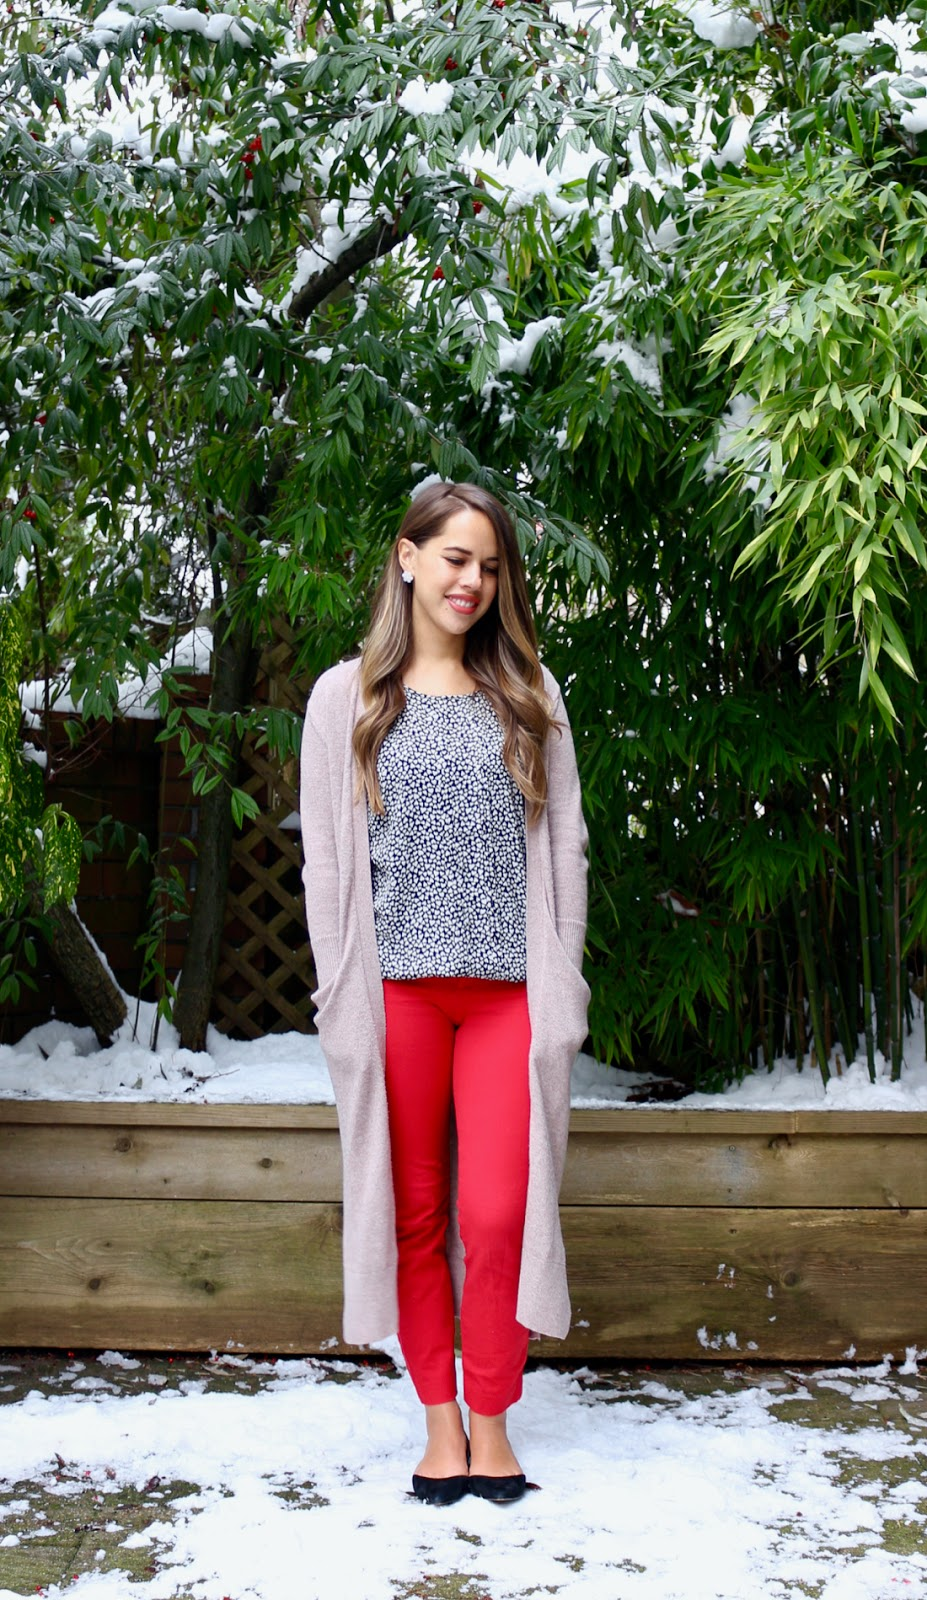 Jules in Flats - Valentine's Day Outfit (Business Casual Winter Workwear on a Budget)